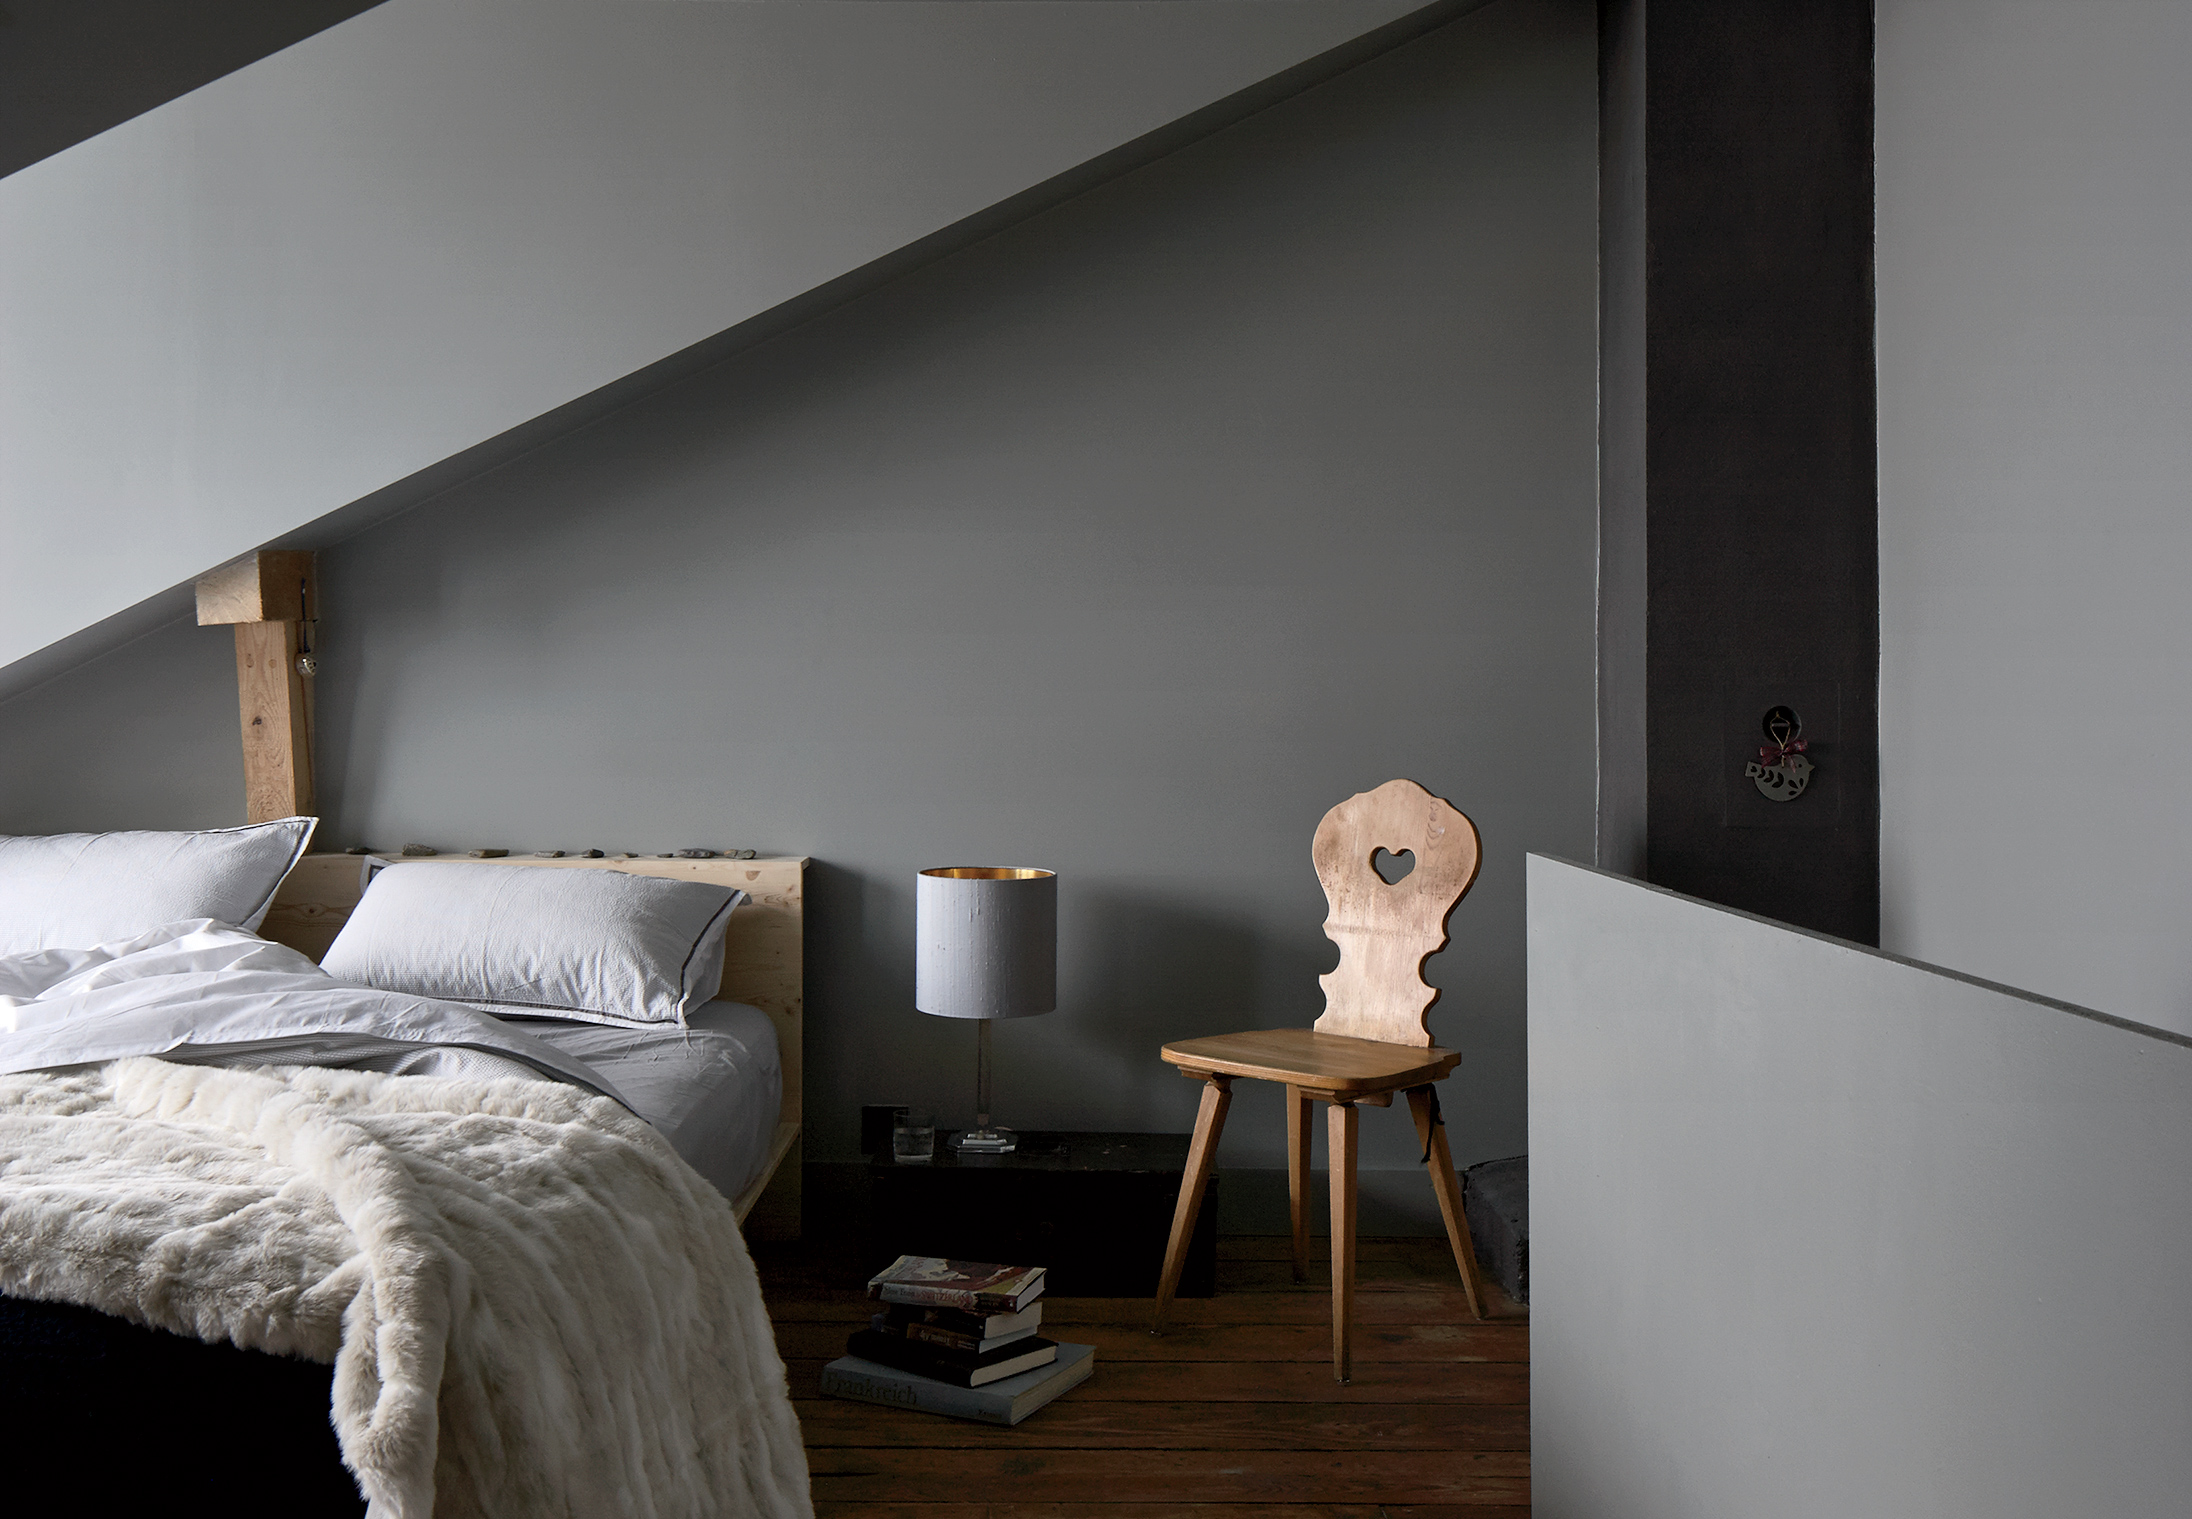 no-half-measures-switzerland-family-getway-renovation-small-space-bedroom-brass-wall-light-john-glew-rectangle.jpg